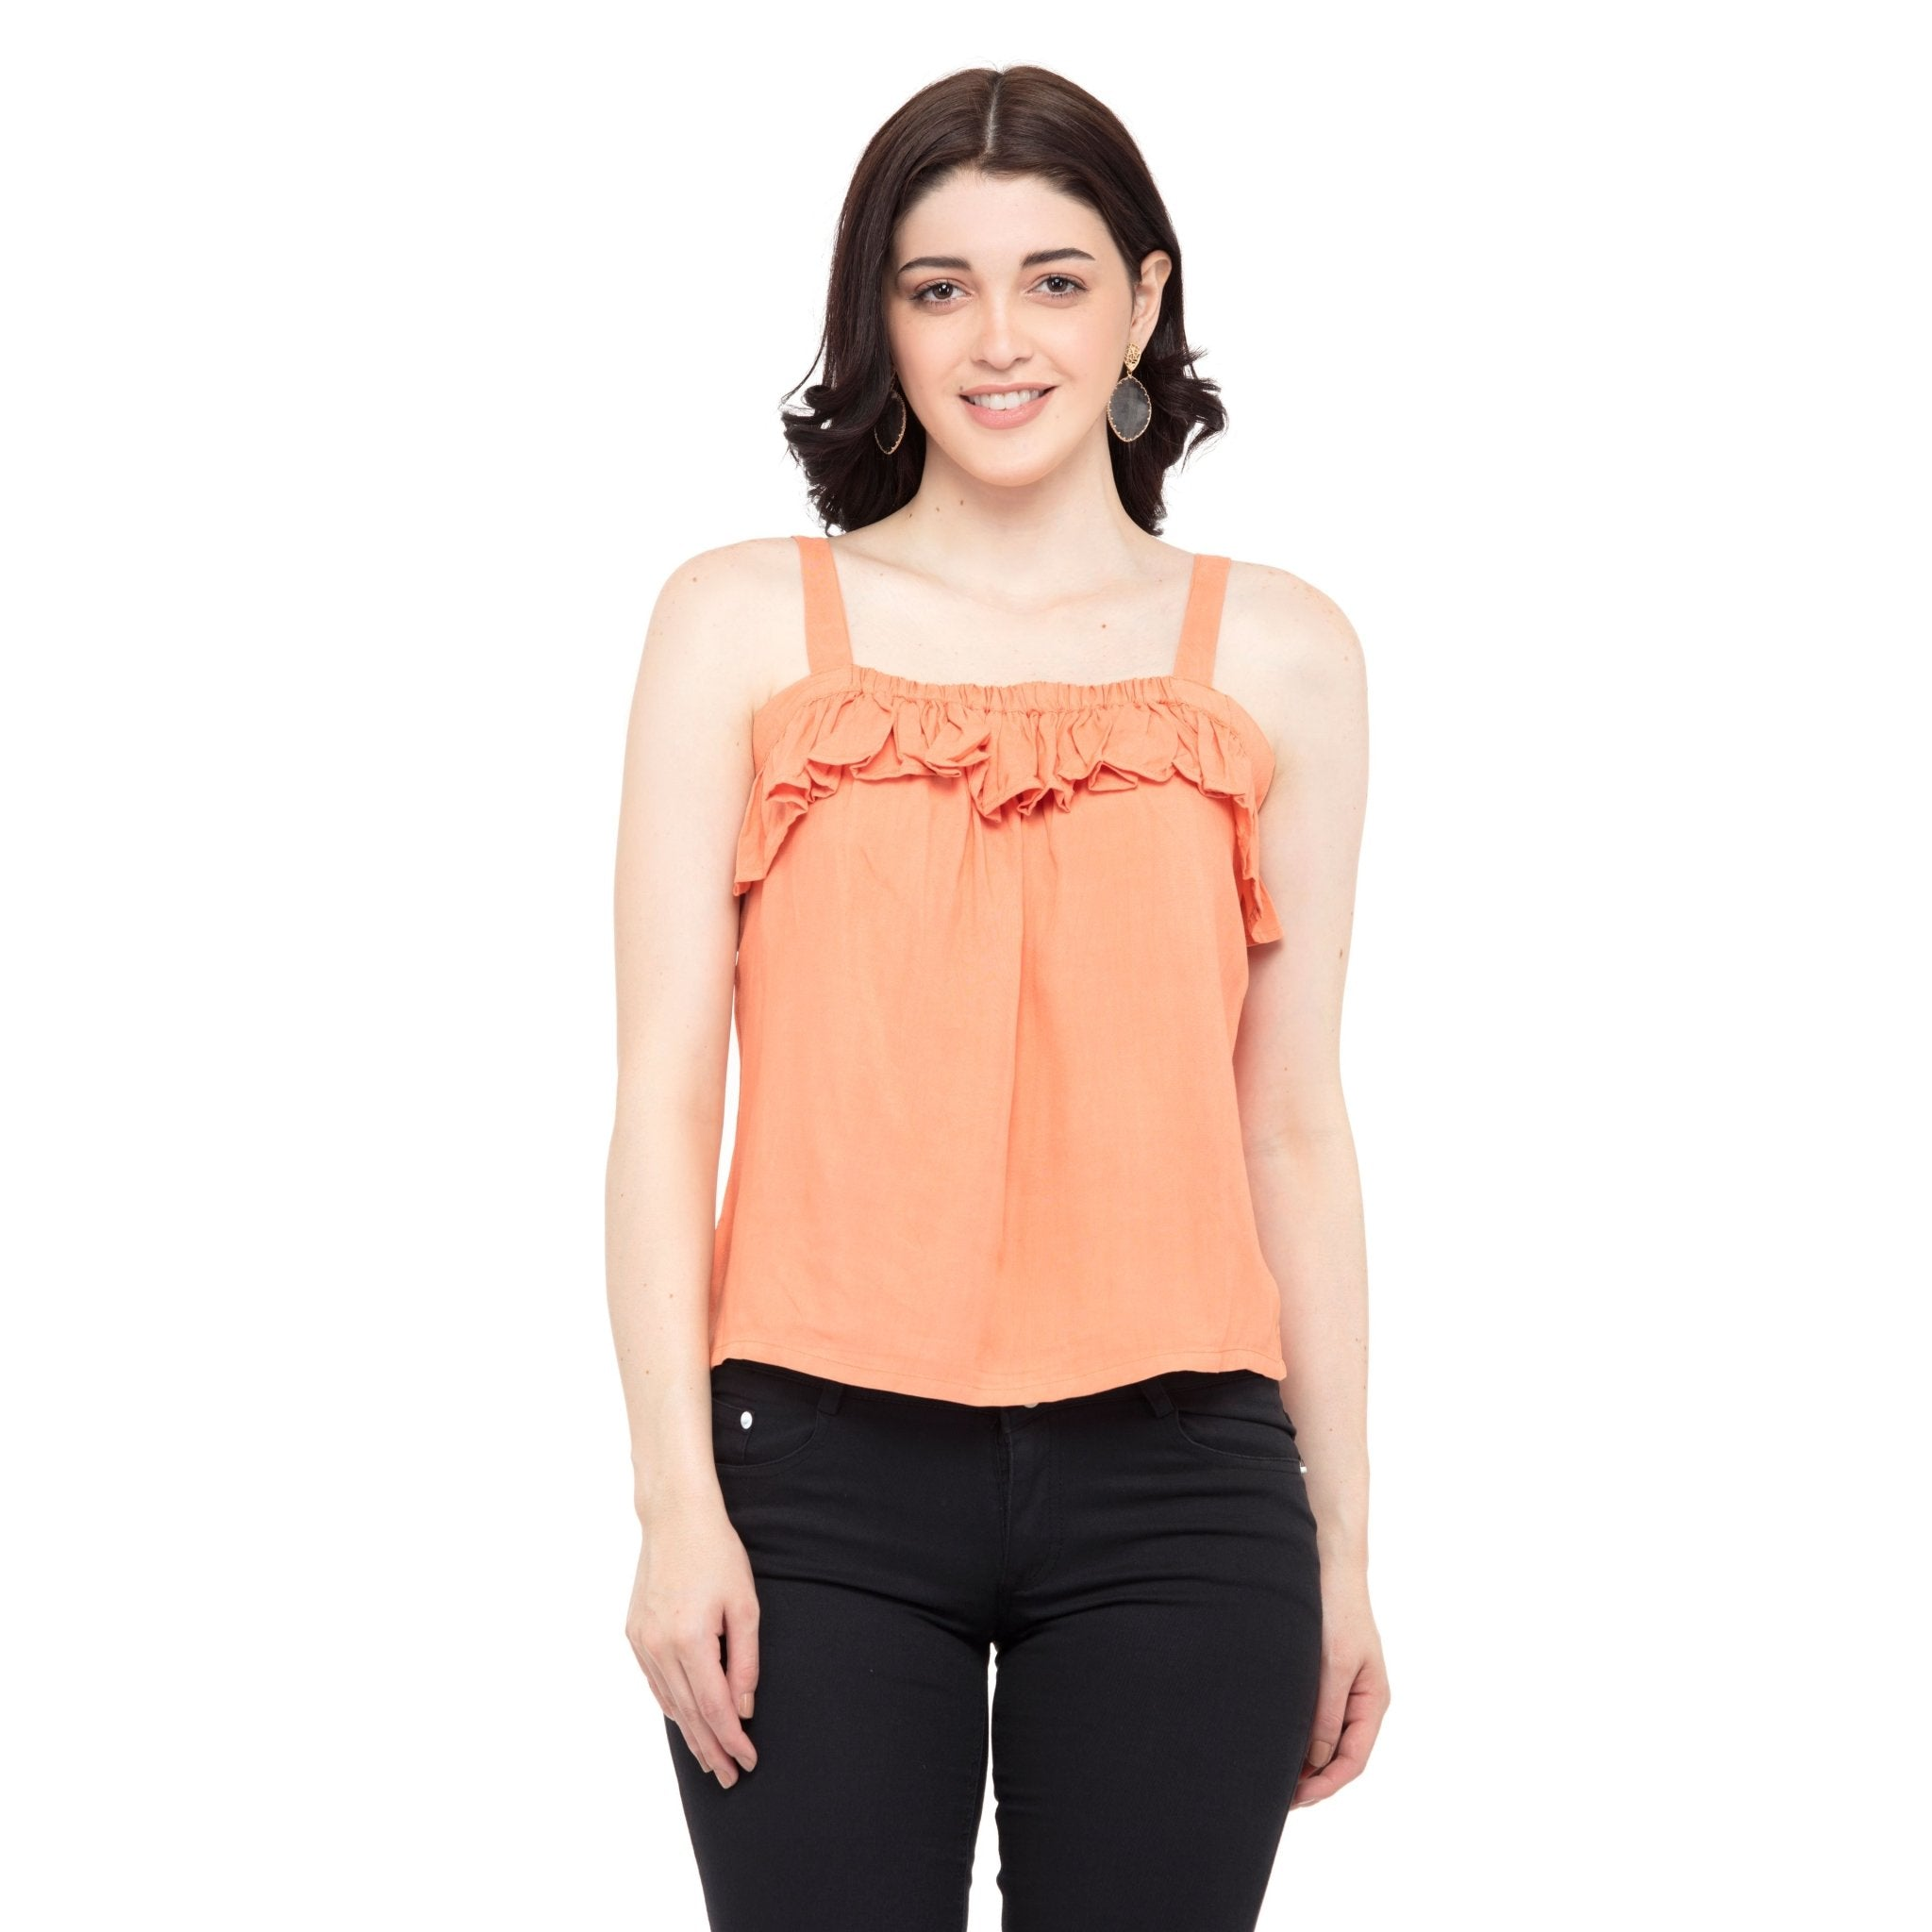 SOLID PEACH RUFFLED STRAP TOP - ZOMO